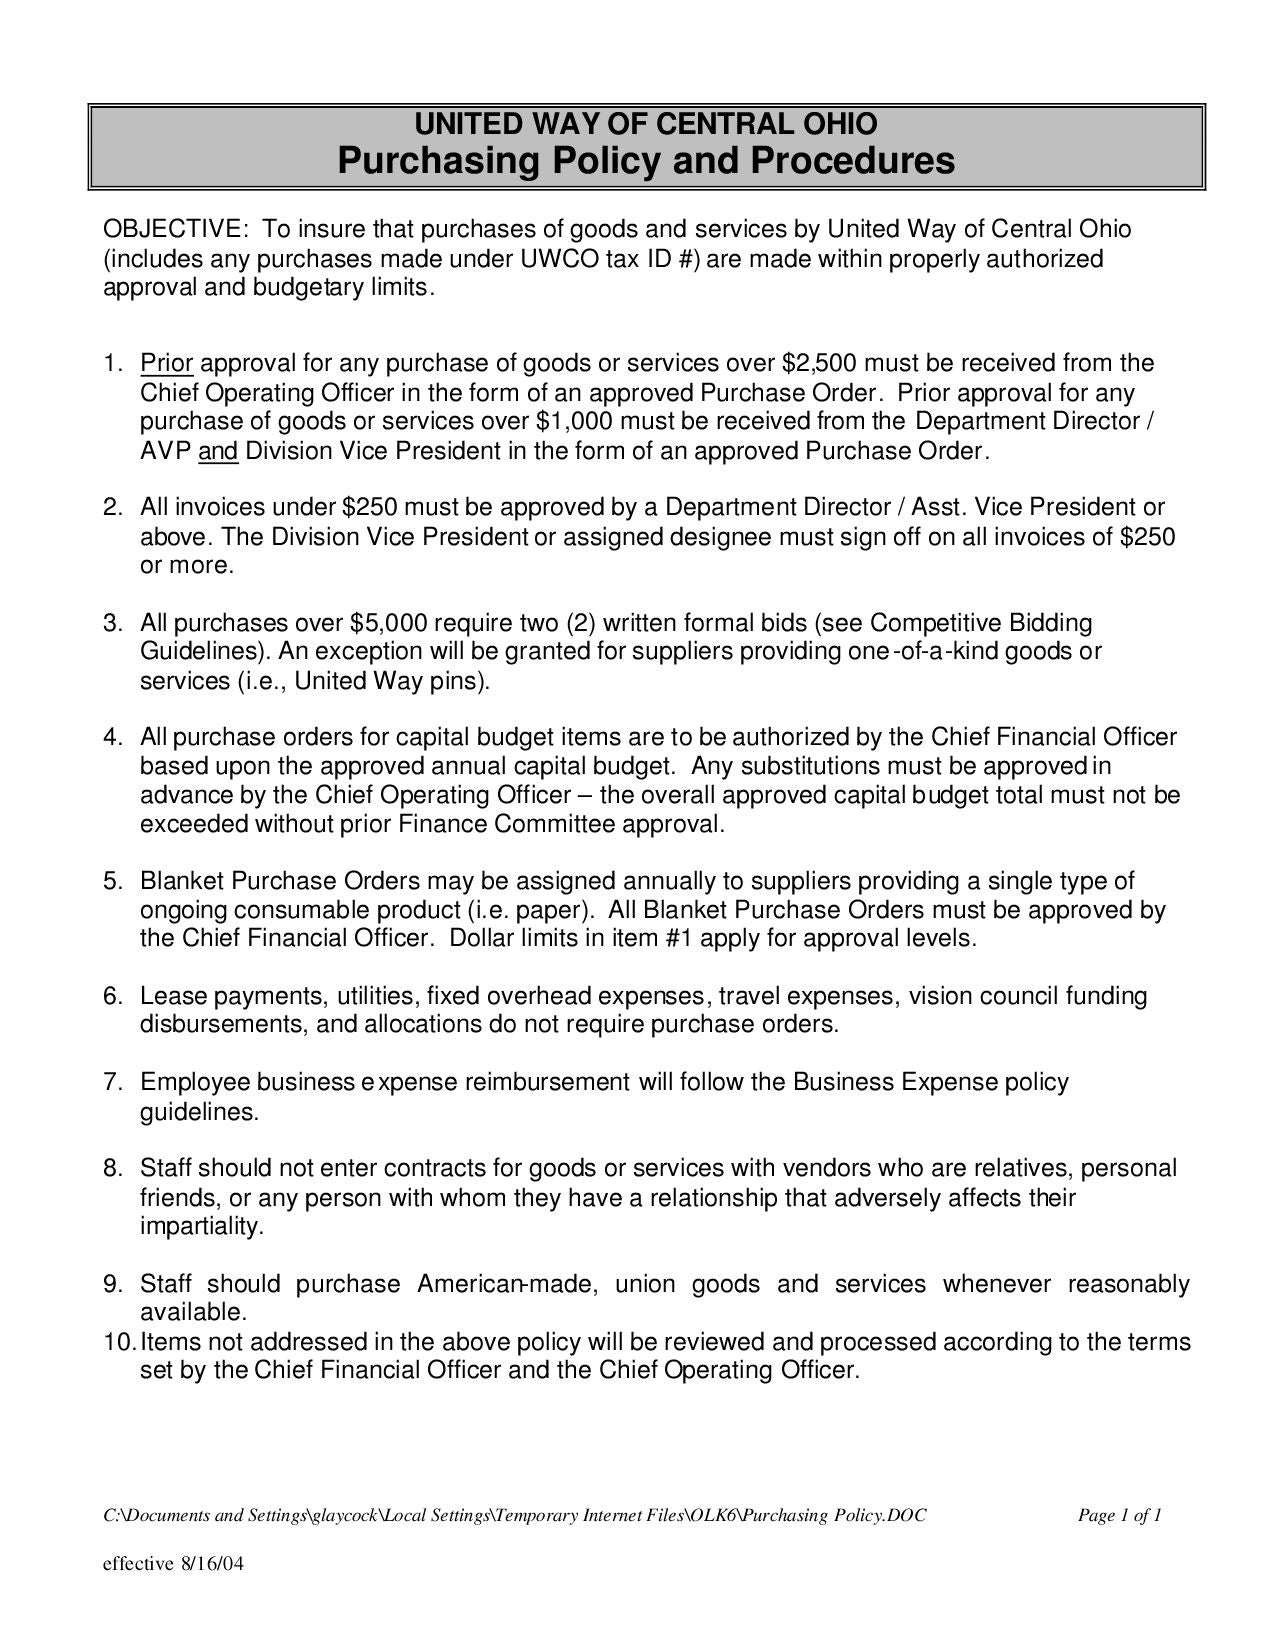 Purchasing Policy Pdf By United Way Of Central Ohio